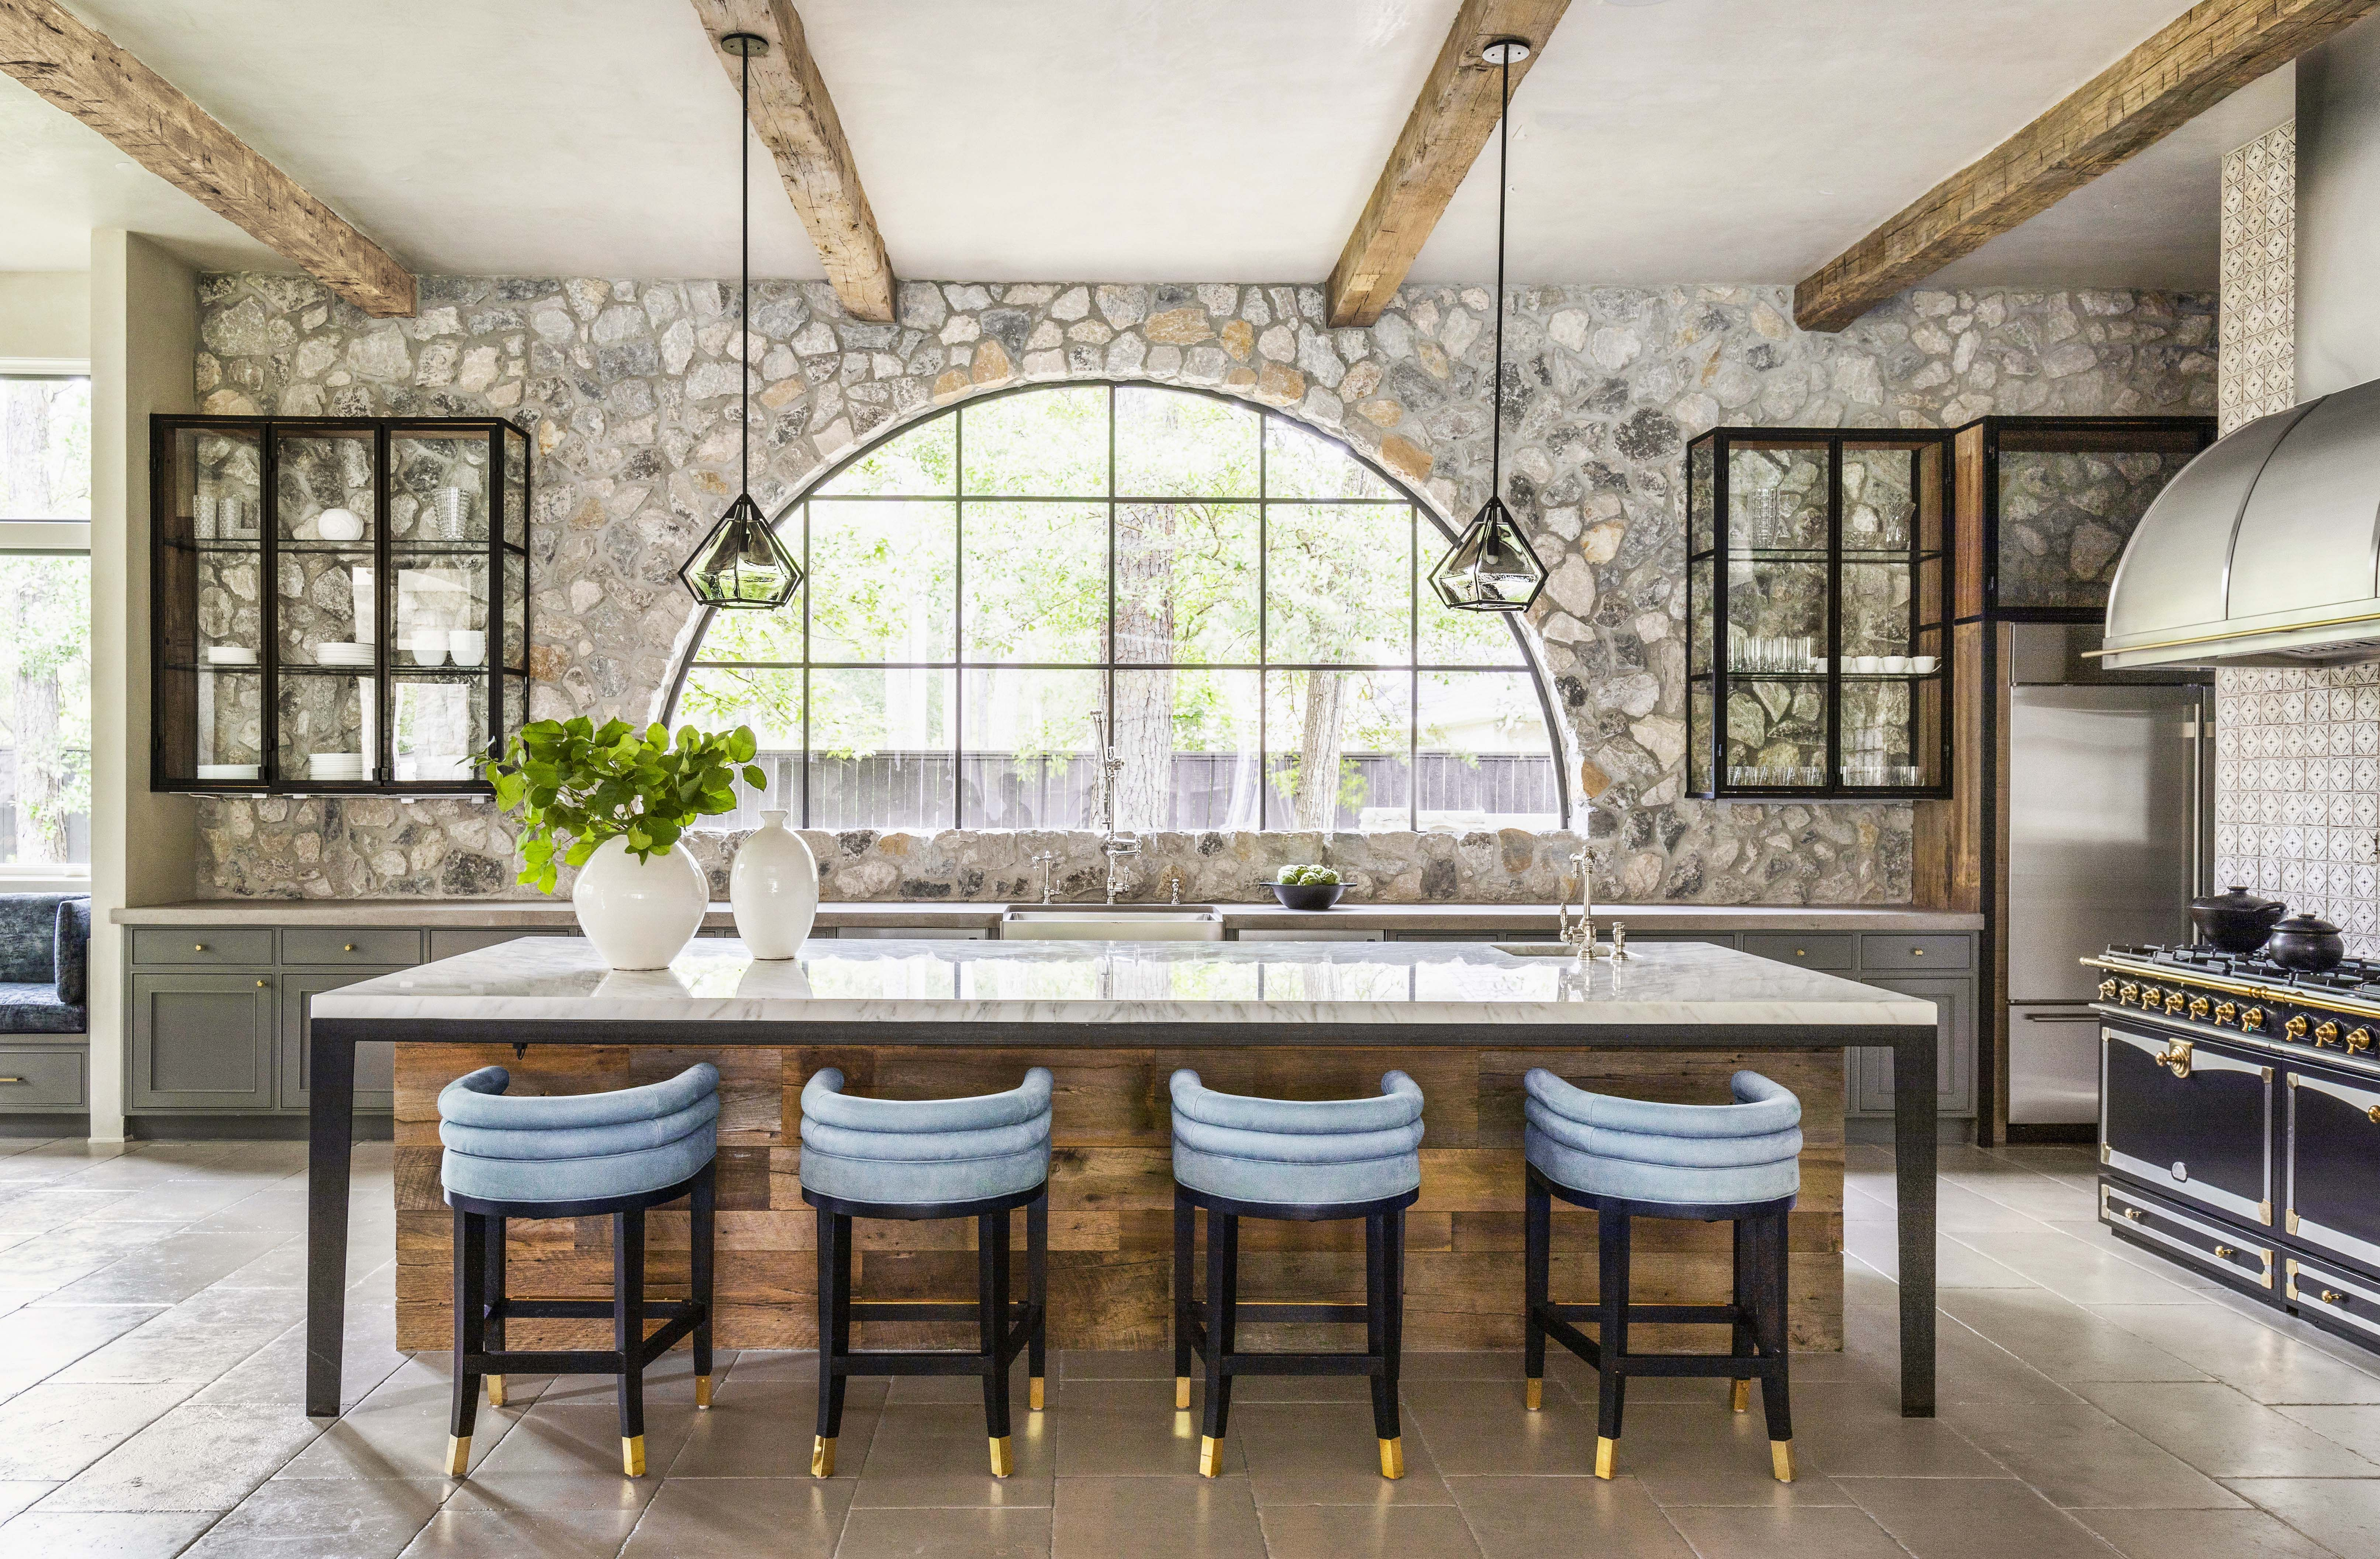 Nina Magon S Vision For This Houston Kitchen Started With An Accent Wall